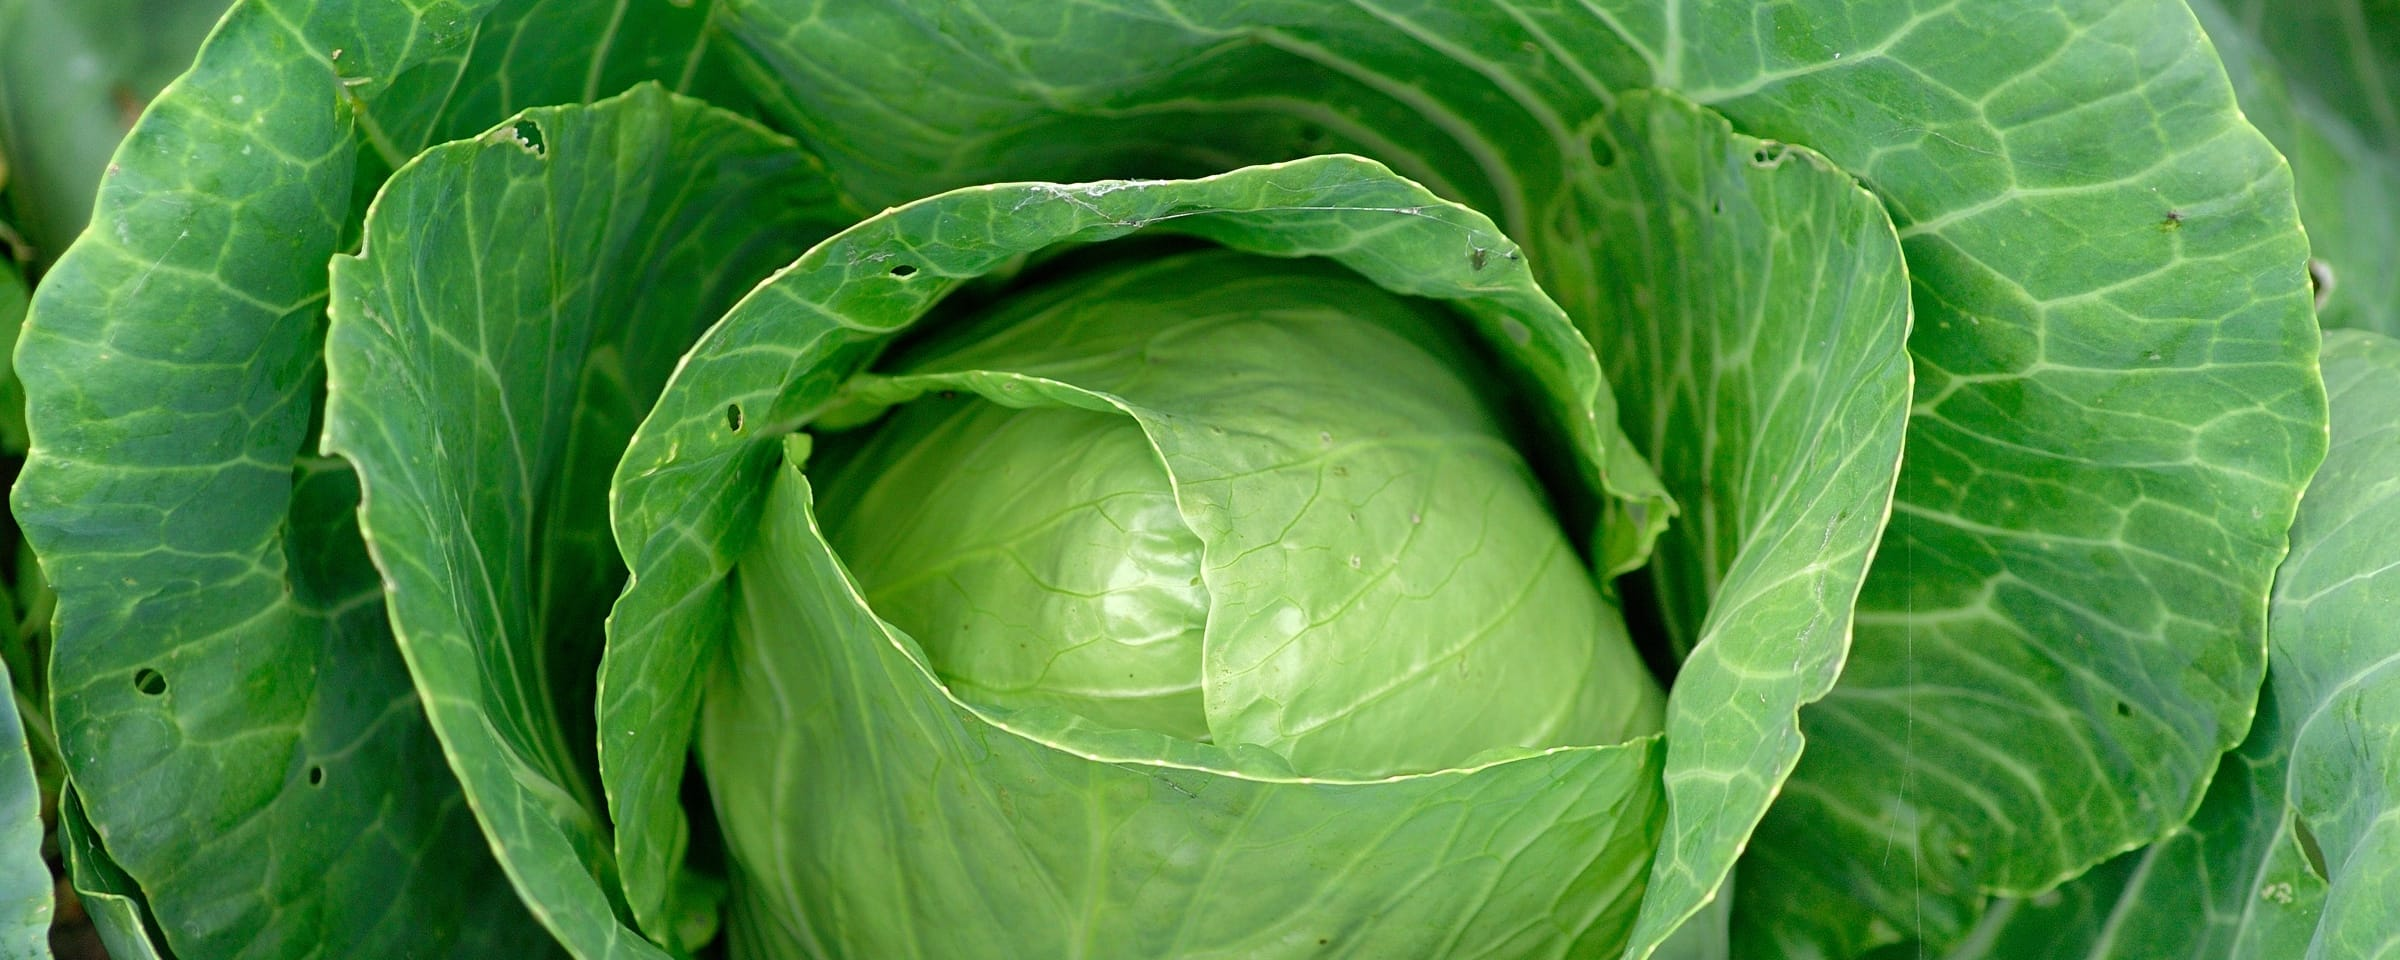 Cabbage Field Vegetable